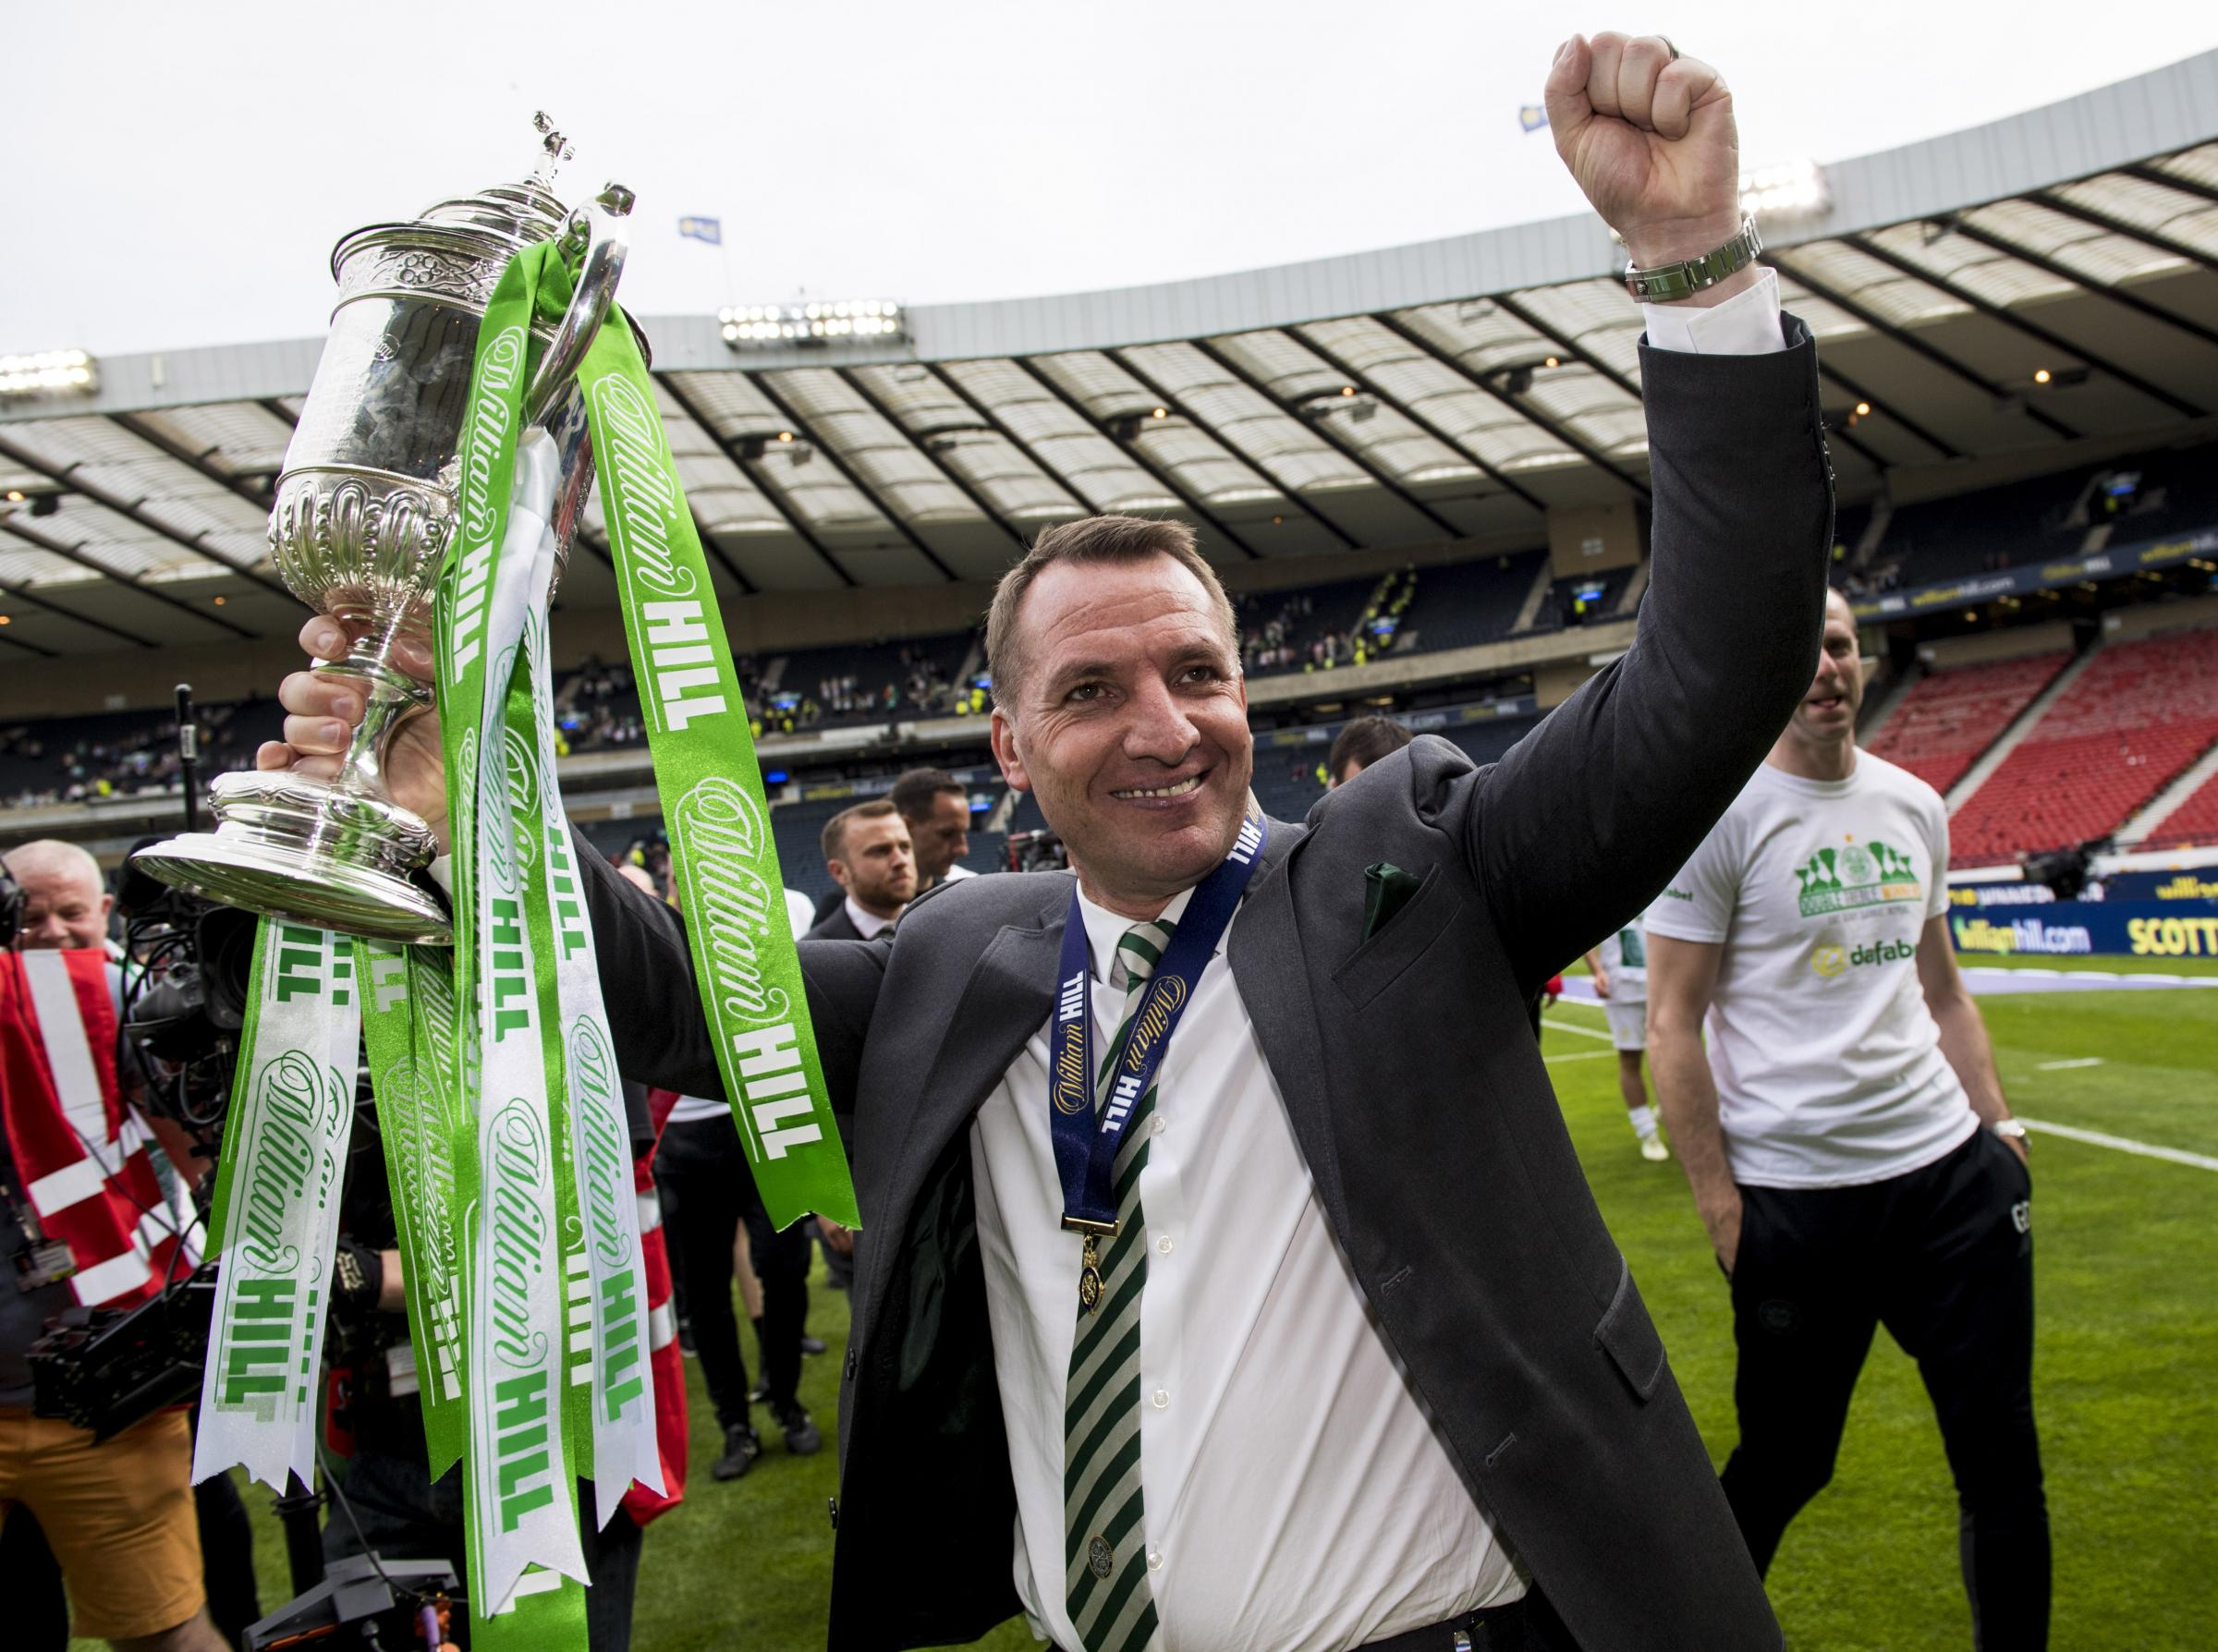 19/05/18 WILLIAM HILL SCOTTISH CUP FINAL. MOTHERWELL v CELTIC. HAMPDEN PARK - GLASGOW . Celtic manager Brendan Rodgers celebrates winning the William Hill Scottish Cup . . ROTA IMAGE.